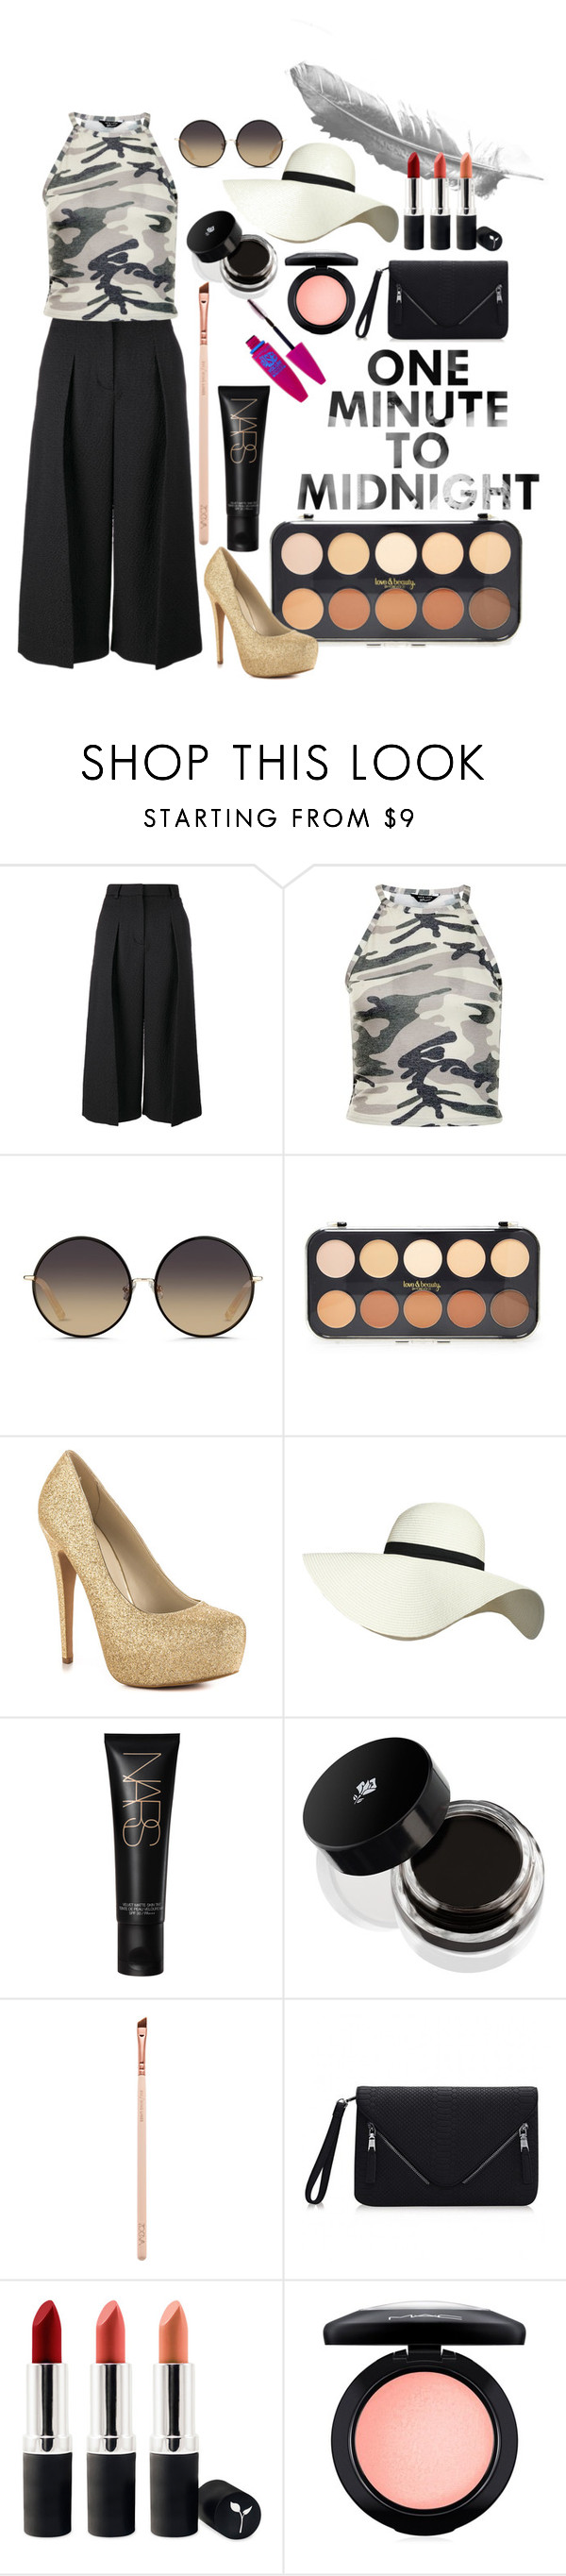 """""""camonochrome"""" by bilqis-safira-bela-ii ❤ liked on Polyvore featuring Erdem, New Look, Matthew Williamson, Forever 21, ALDO, Pilot, Lancôme, Terre Mère, MAC Cosmetics and Maybelline"""